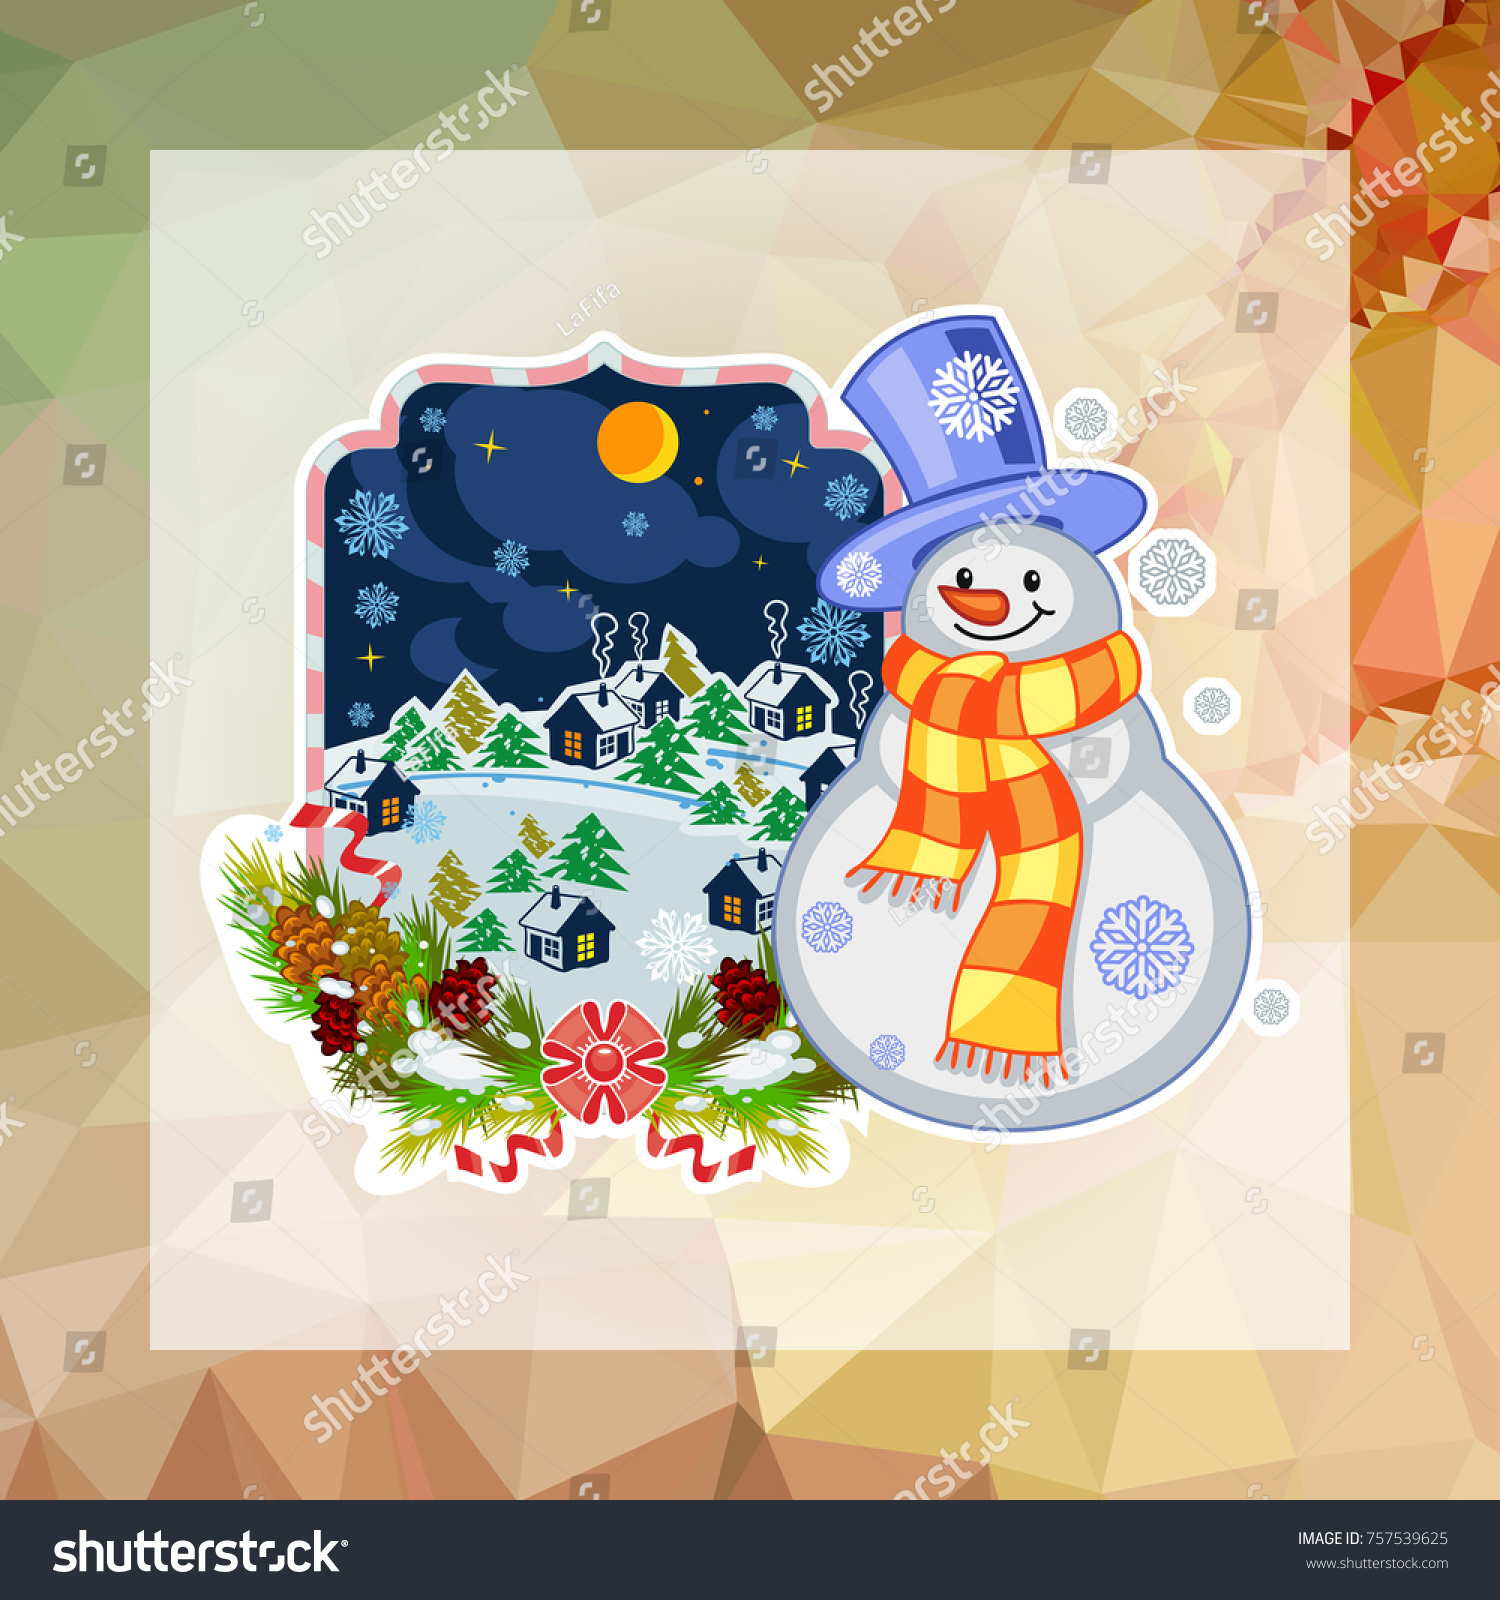 Holiday Square Christmas Card Funny Snowman Stock Vector Royalty